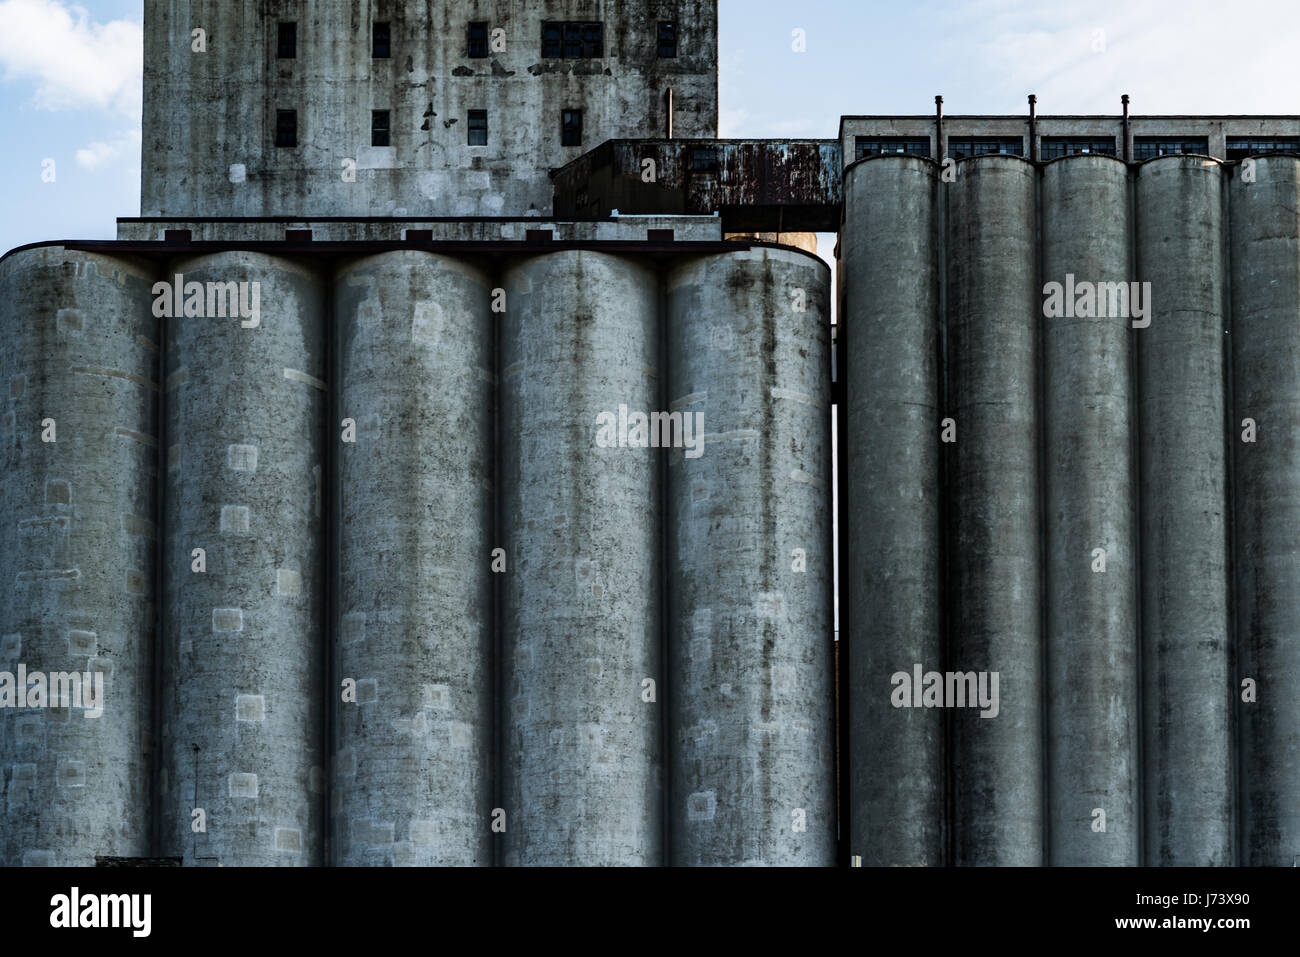 leftover industry from the grain belt in Minneapolis - Stock Image